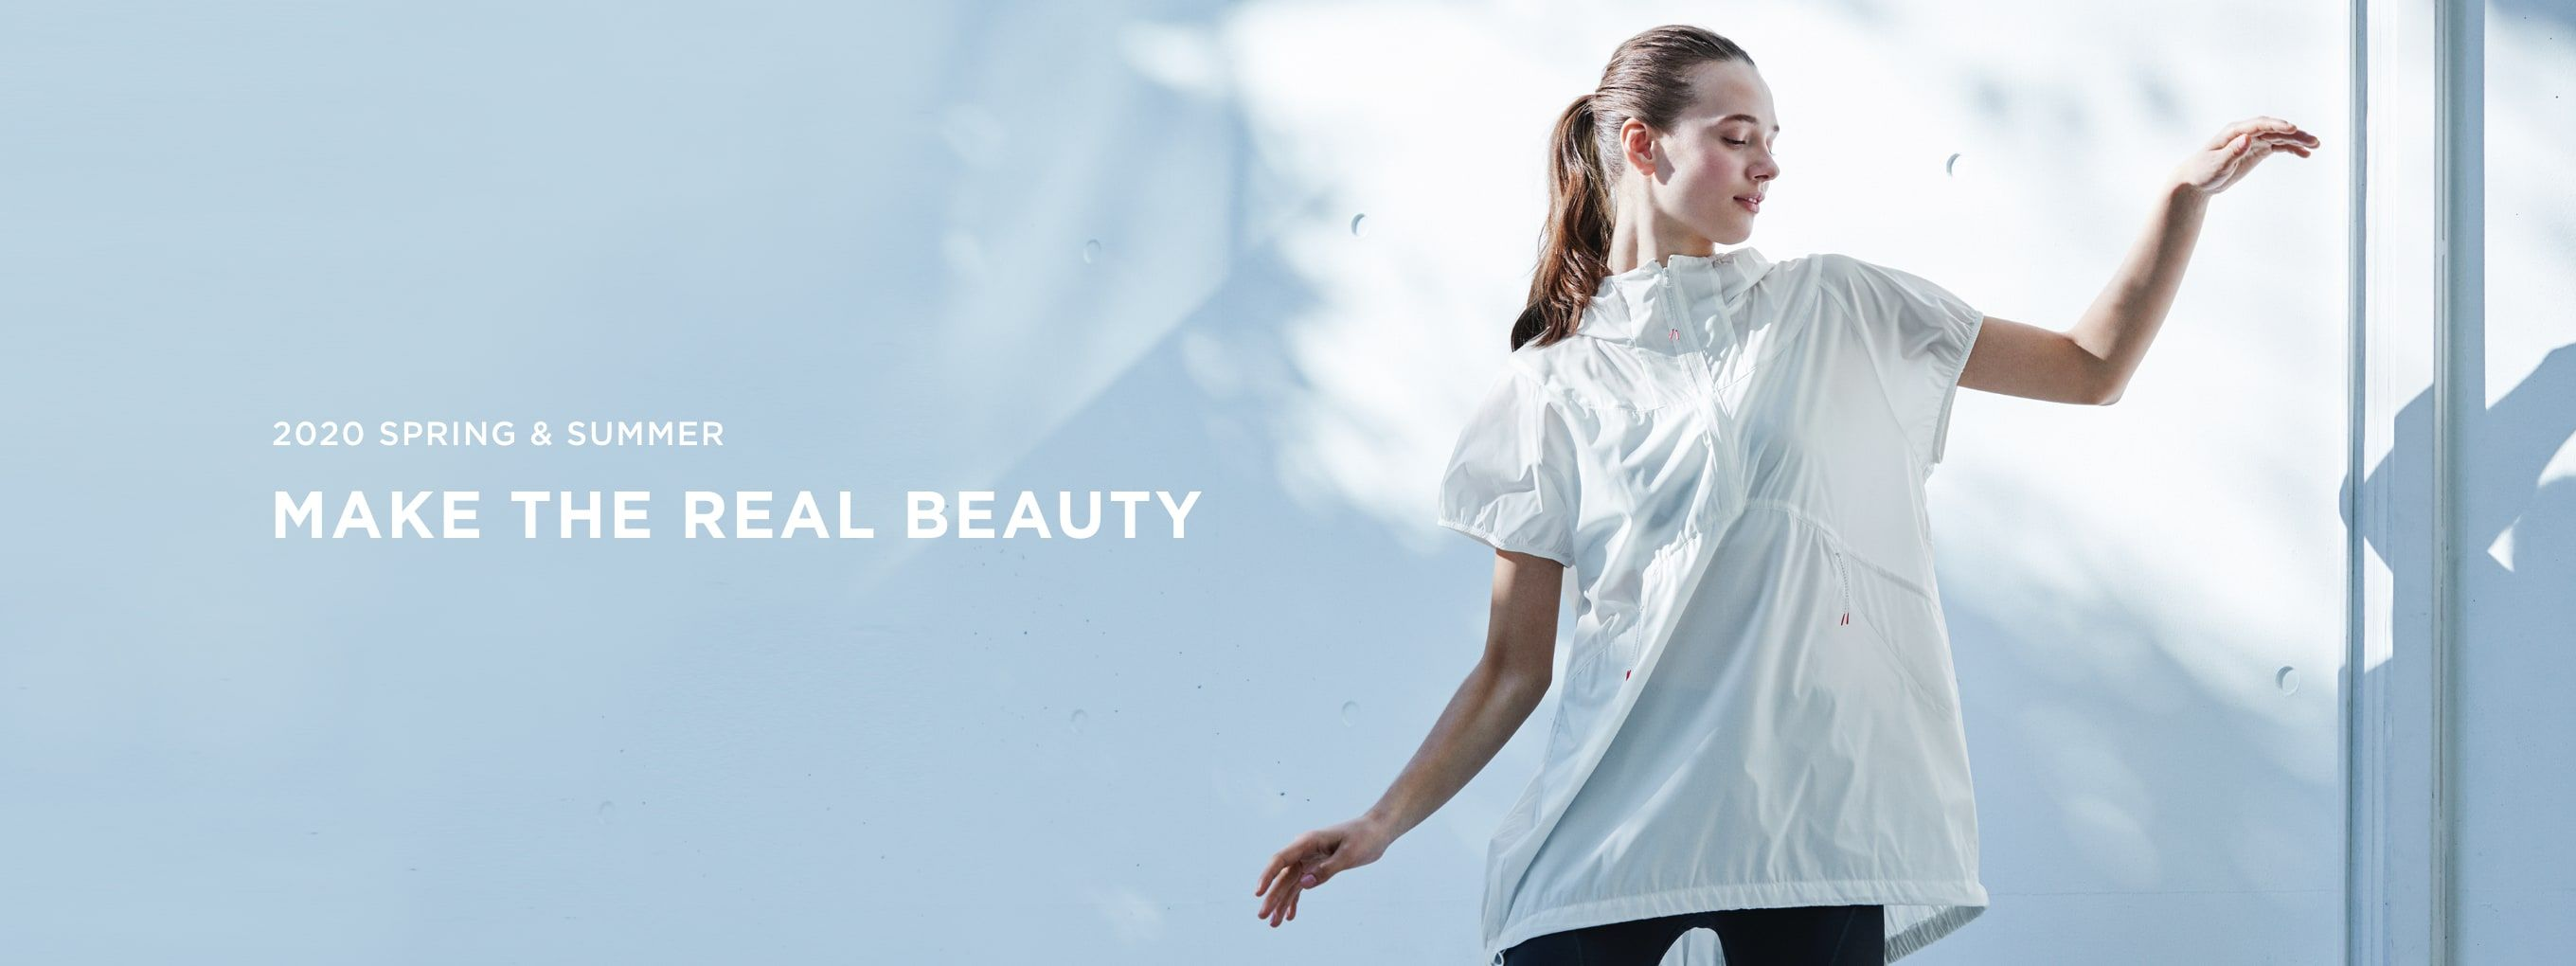 2020 SPRING SUMMER MAKE THE REAL BEAUTY